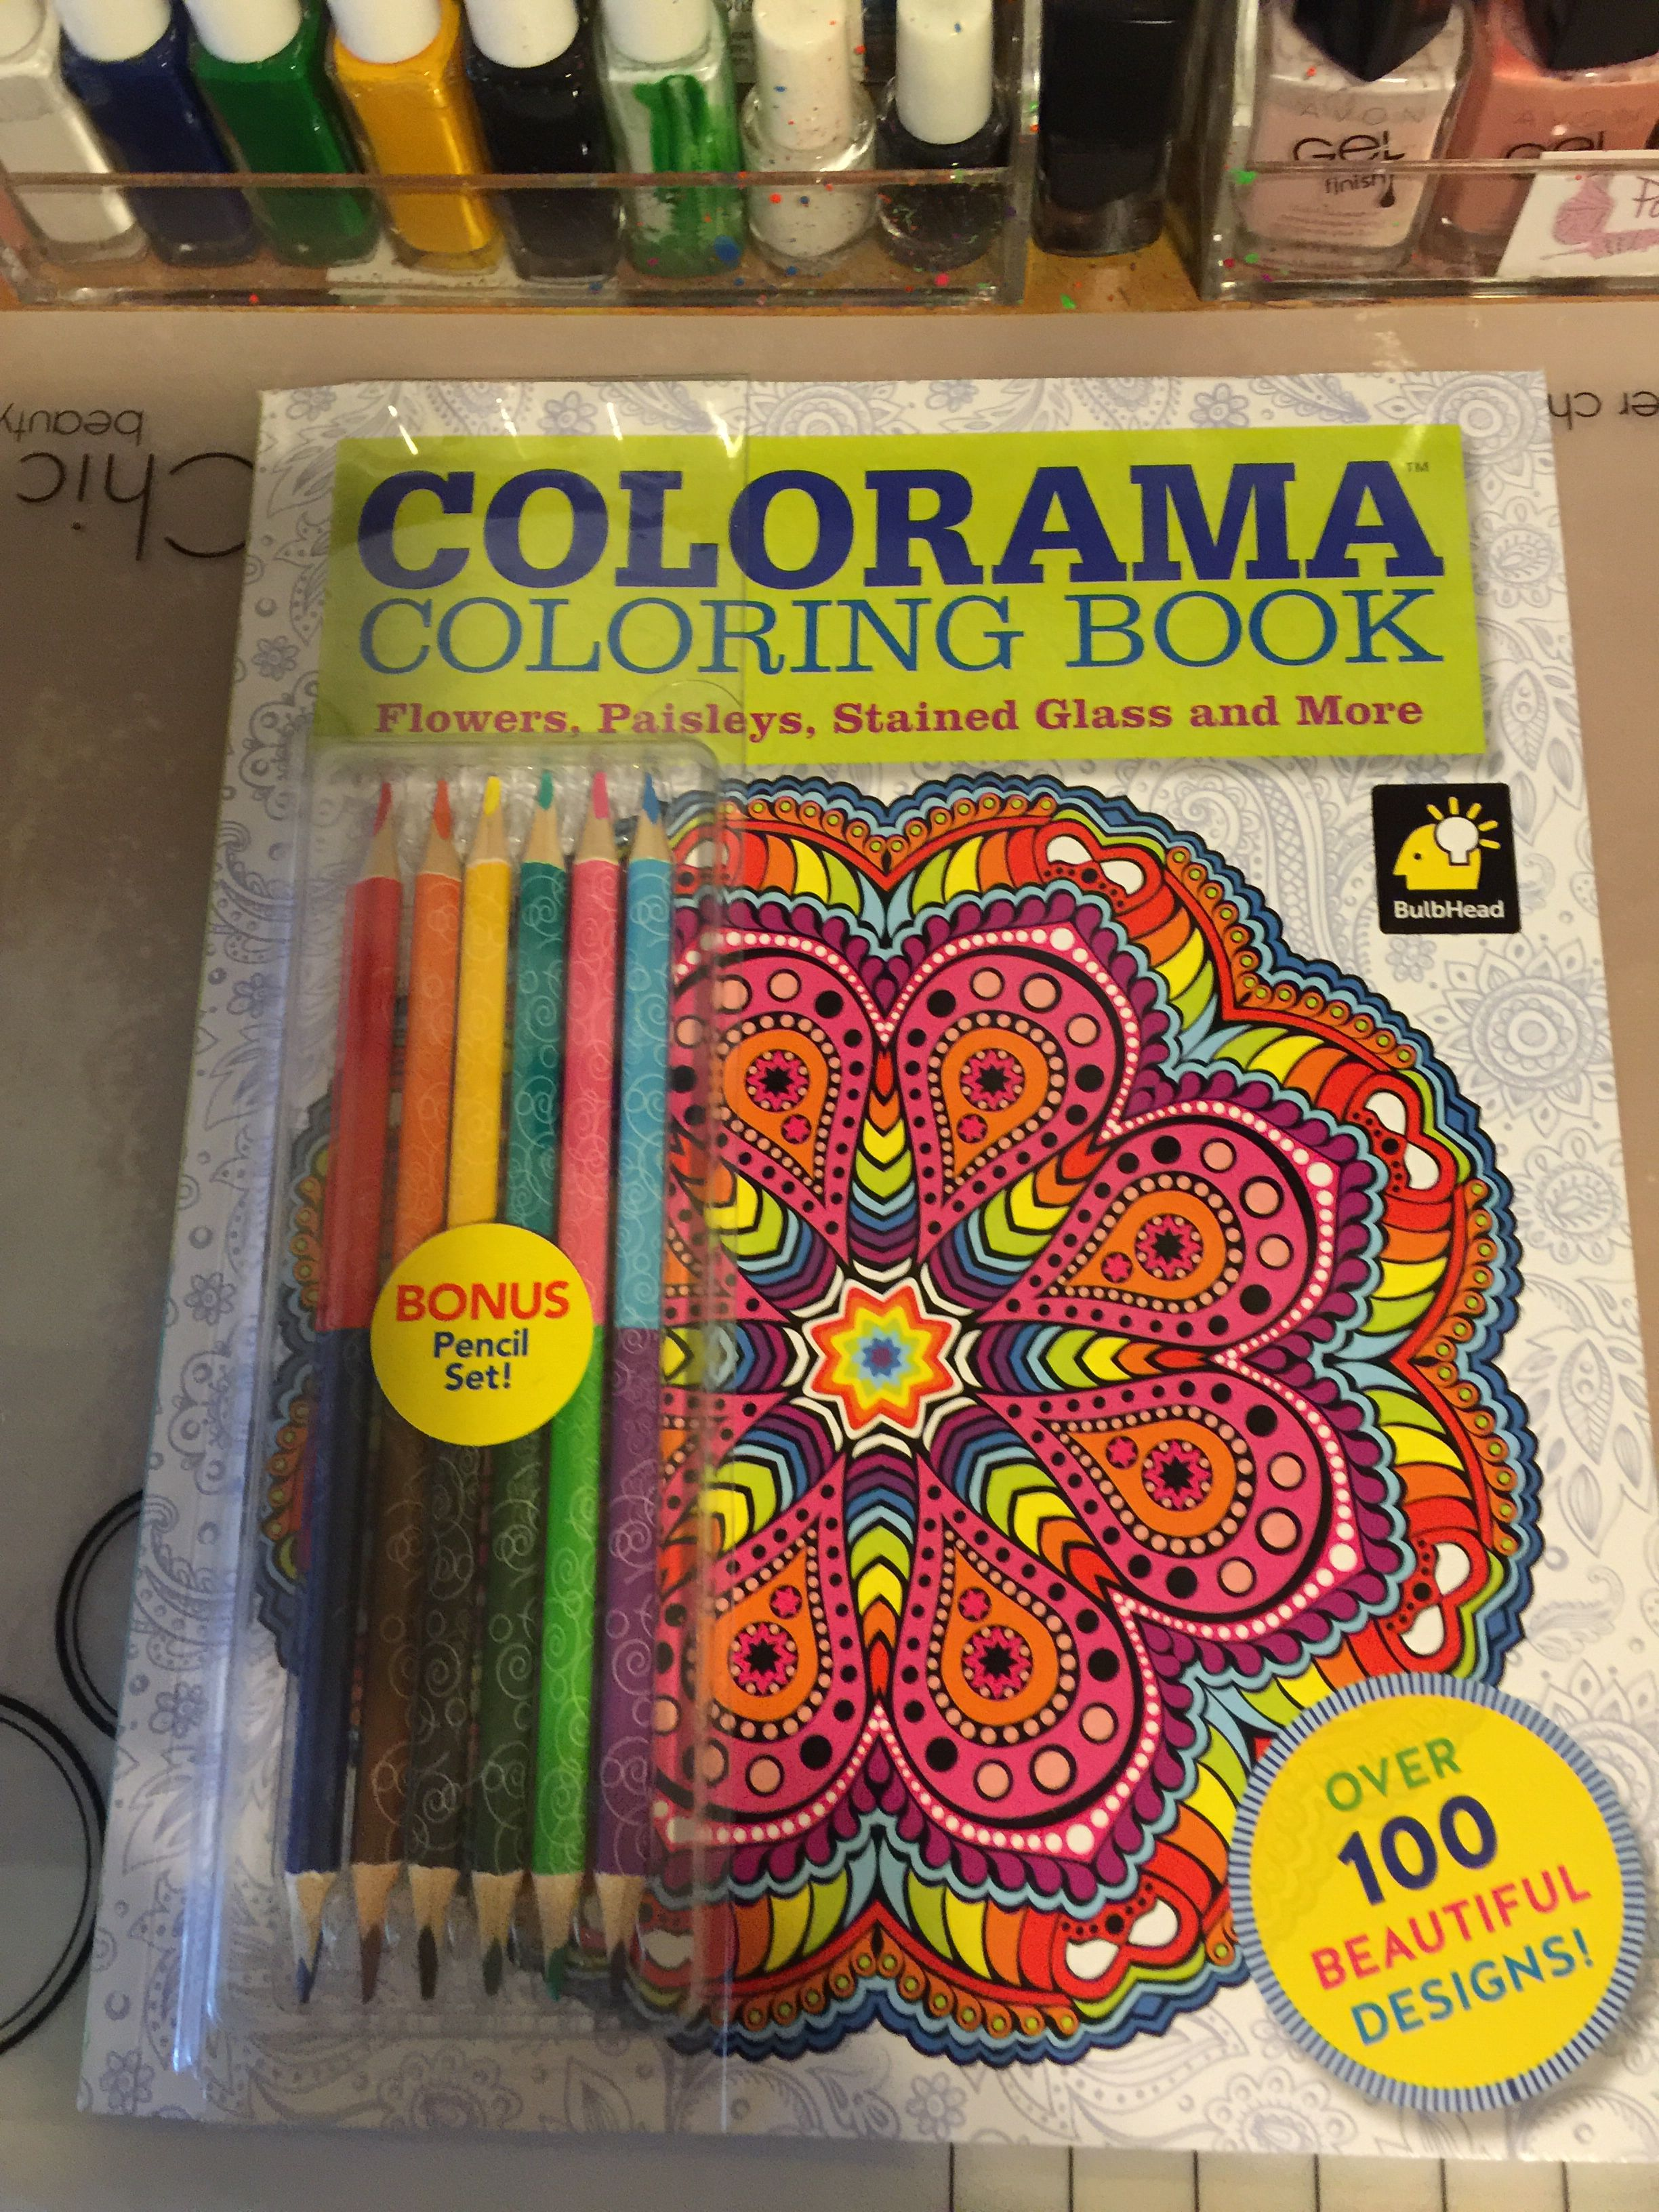 Colorama Coloring Book! Mandalas from Walmart I got this for ...